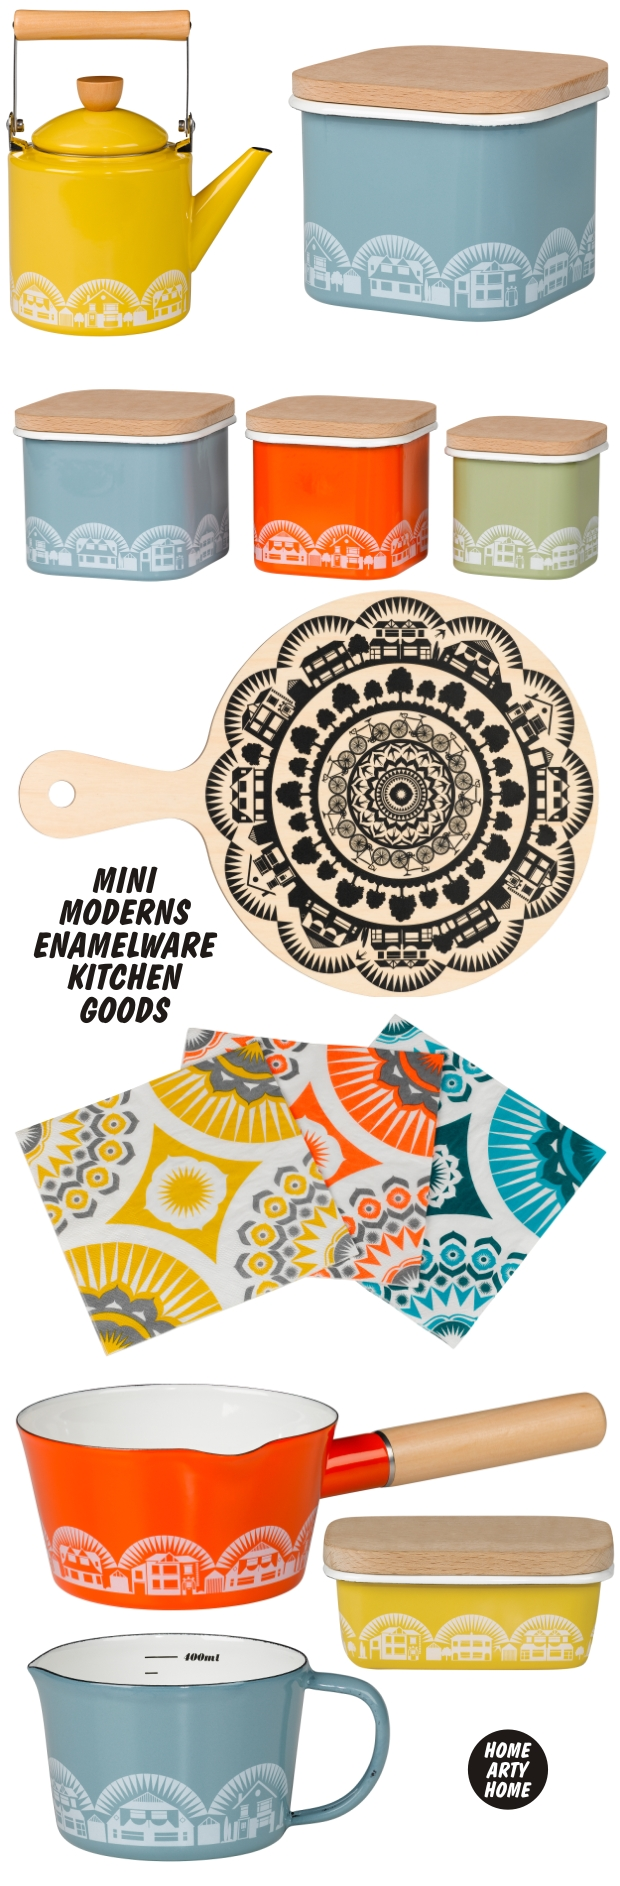 Mini_Moderns_Enamel_Kitchen_Goods_homeartyhome2